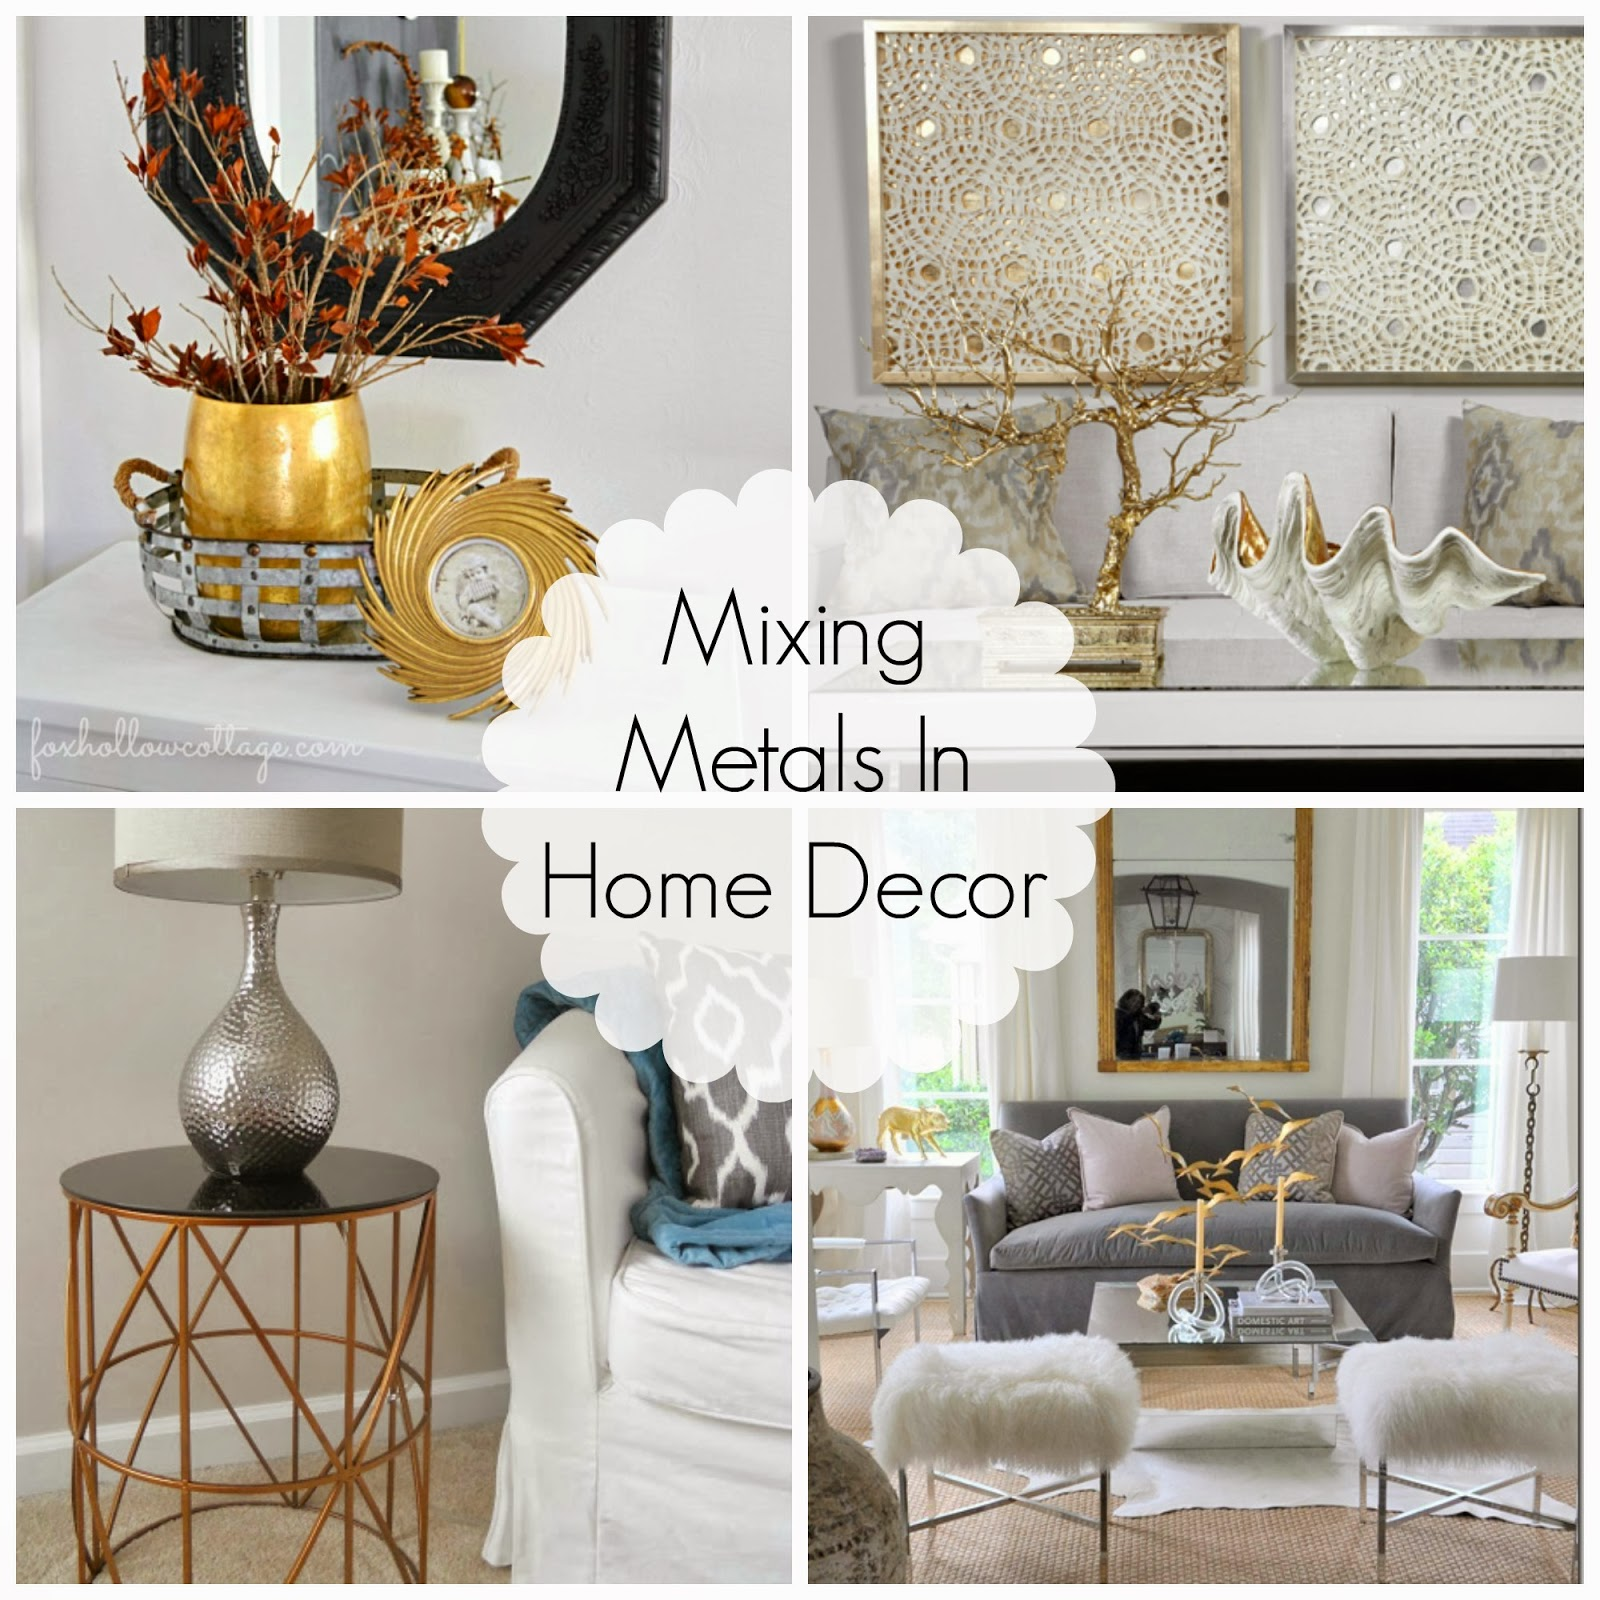 Http Decoratingcents Blogspot Com 2013 10 Mixing Metals In Home Decor Html